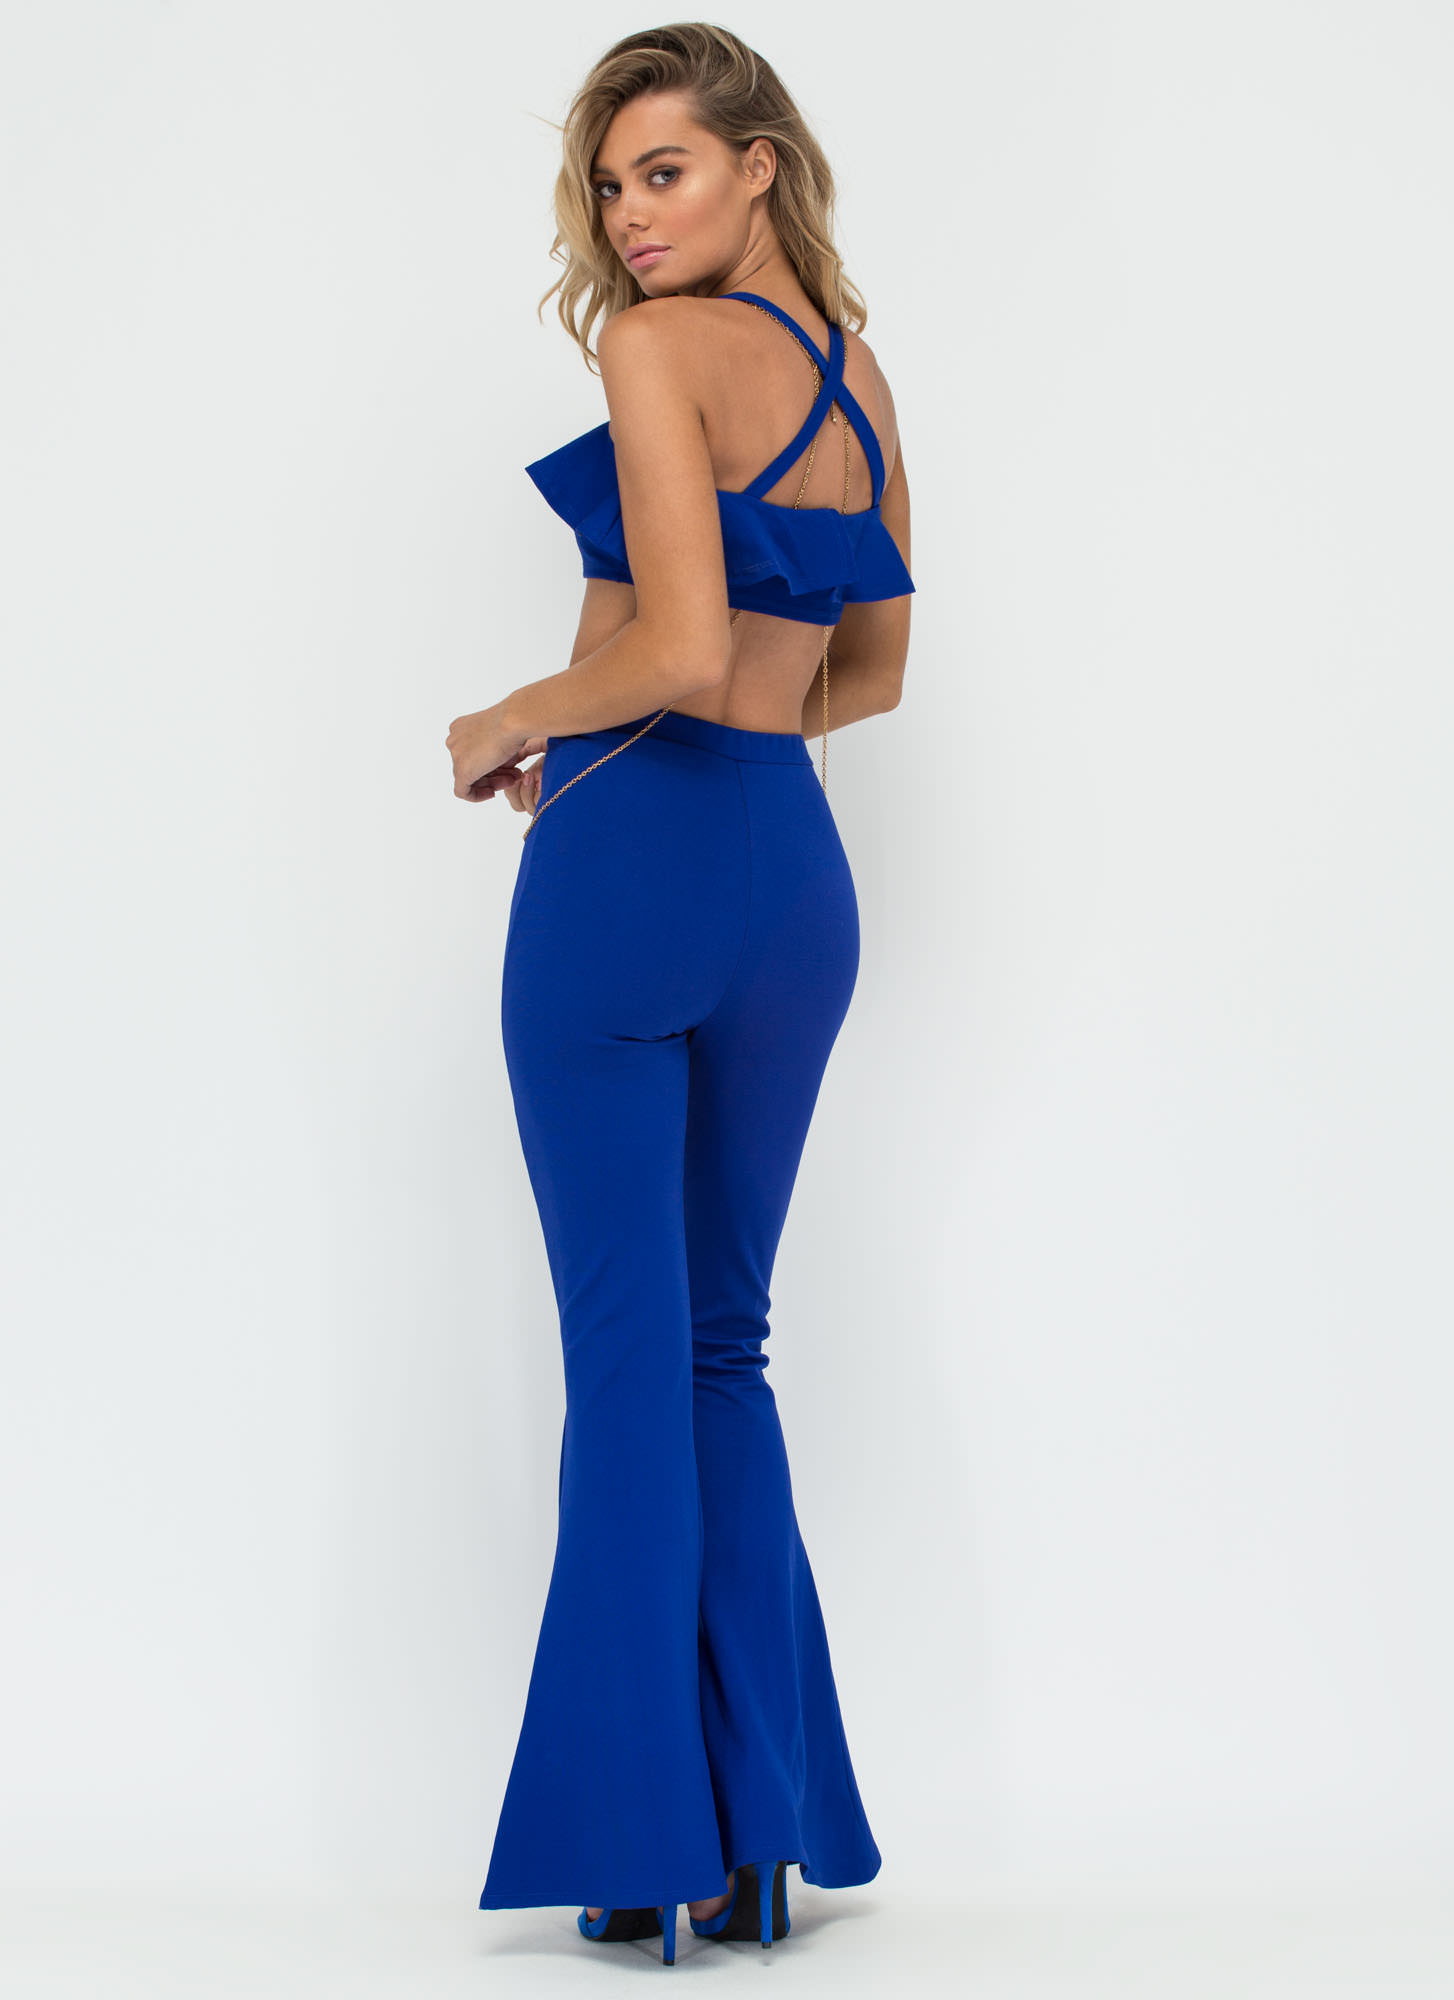 Catch The Fever Crop Top 'N Pants Set ROYAL